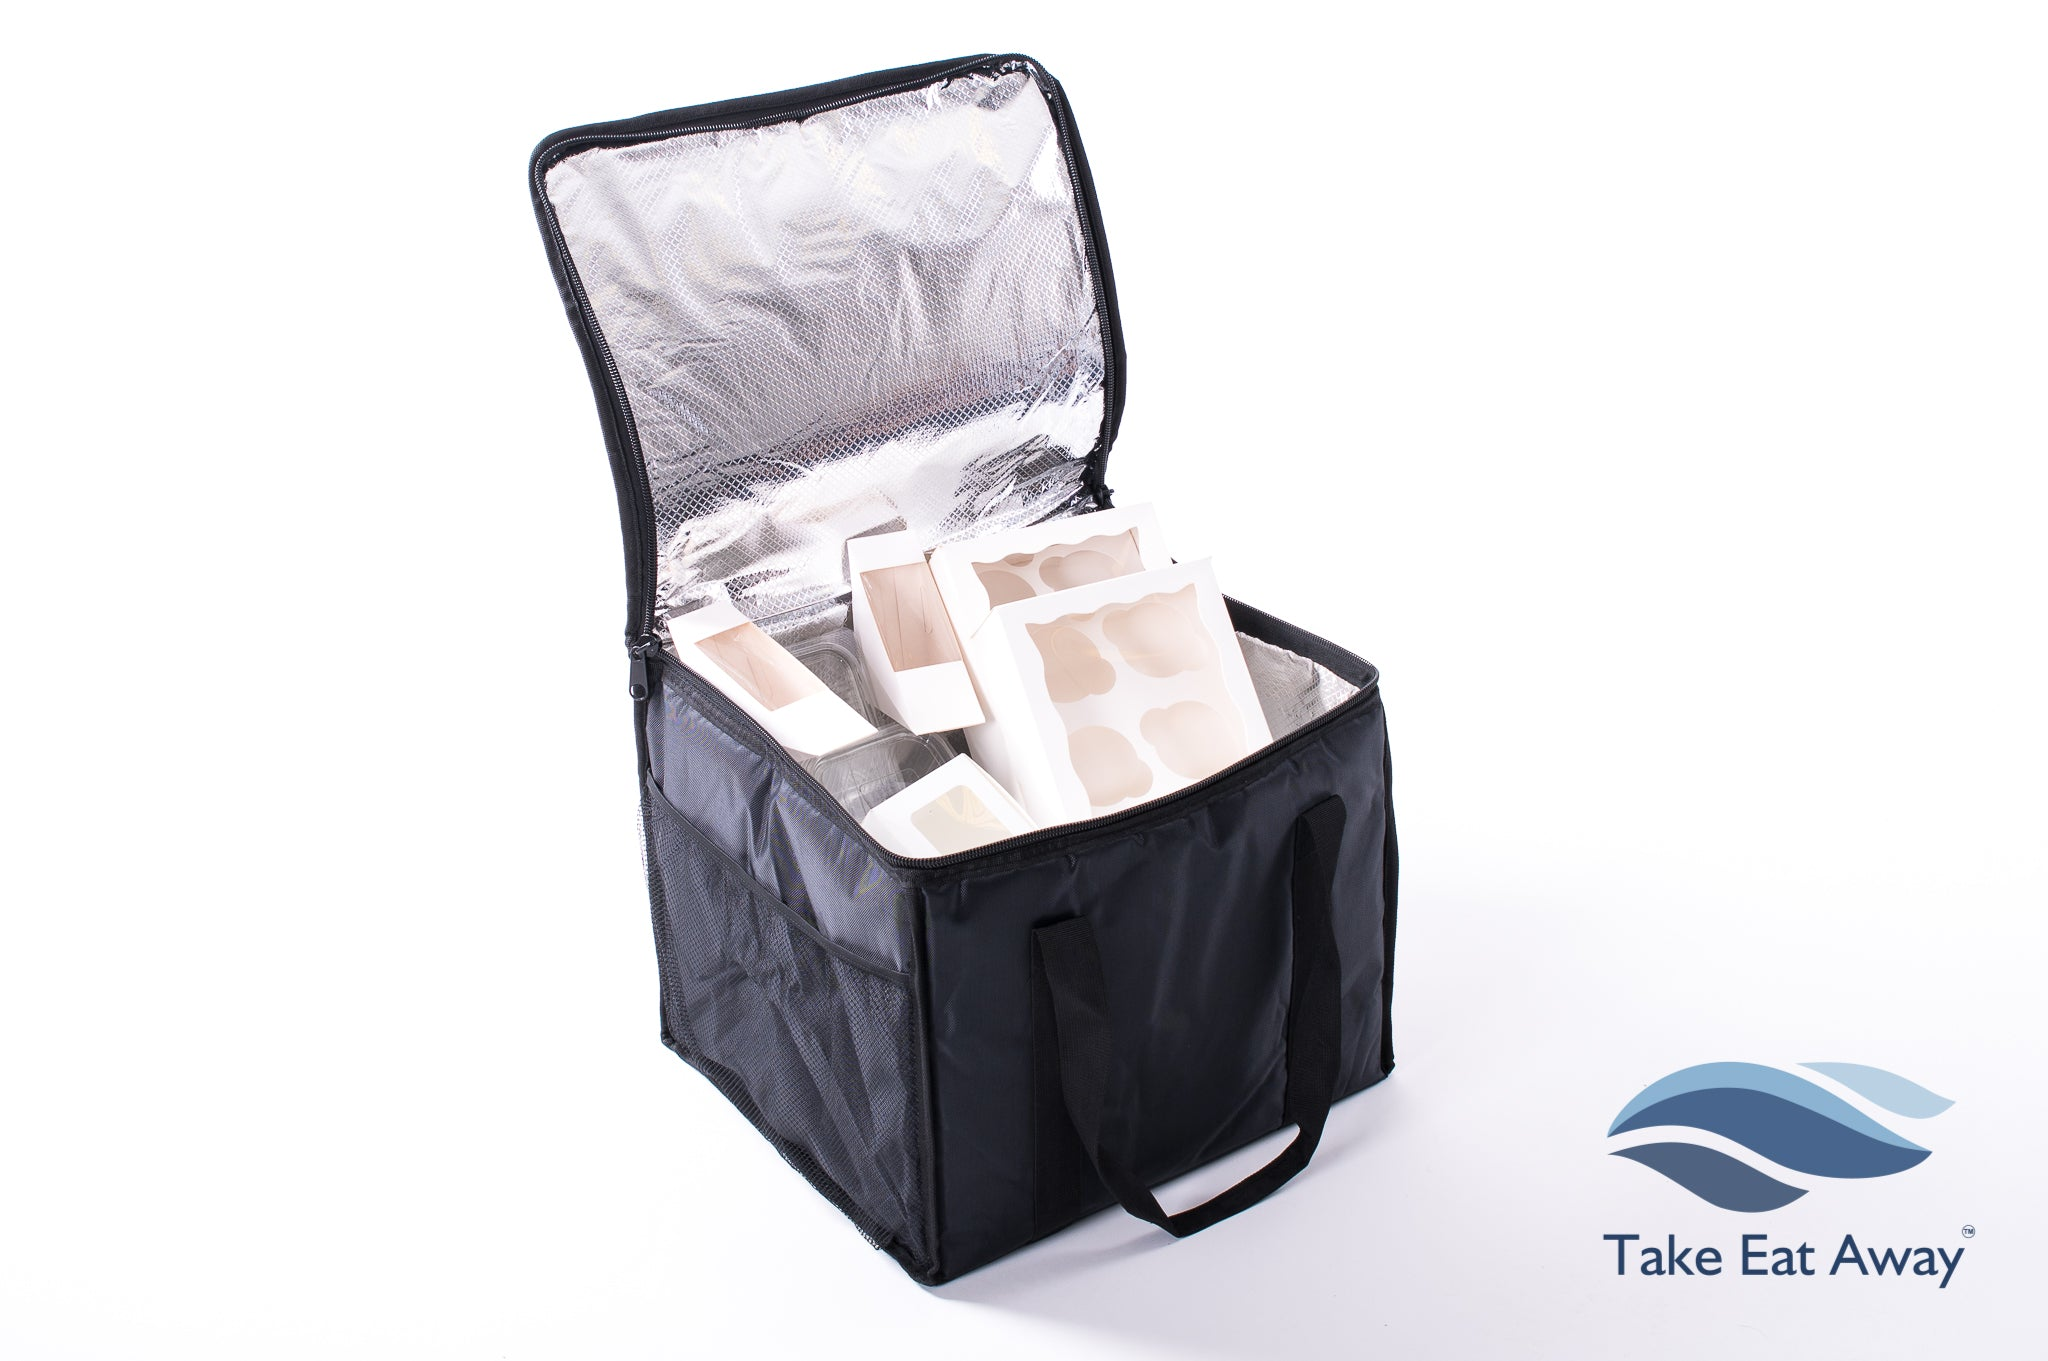 Chilled Food Delivery Bag - 51 Litre Catering Insulated Cool Deliveries Bags C17